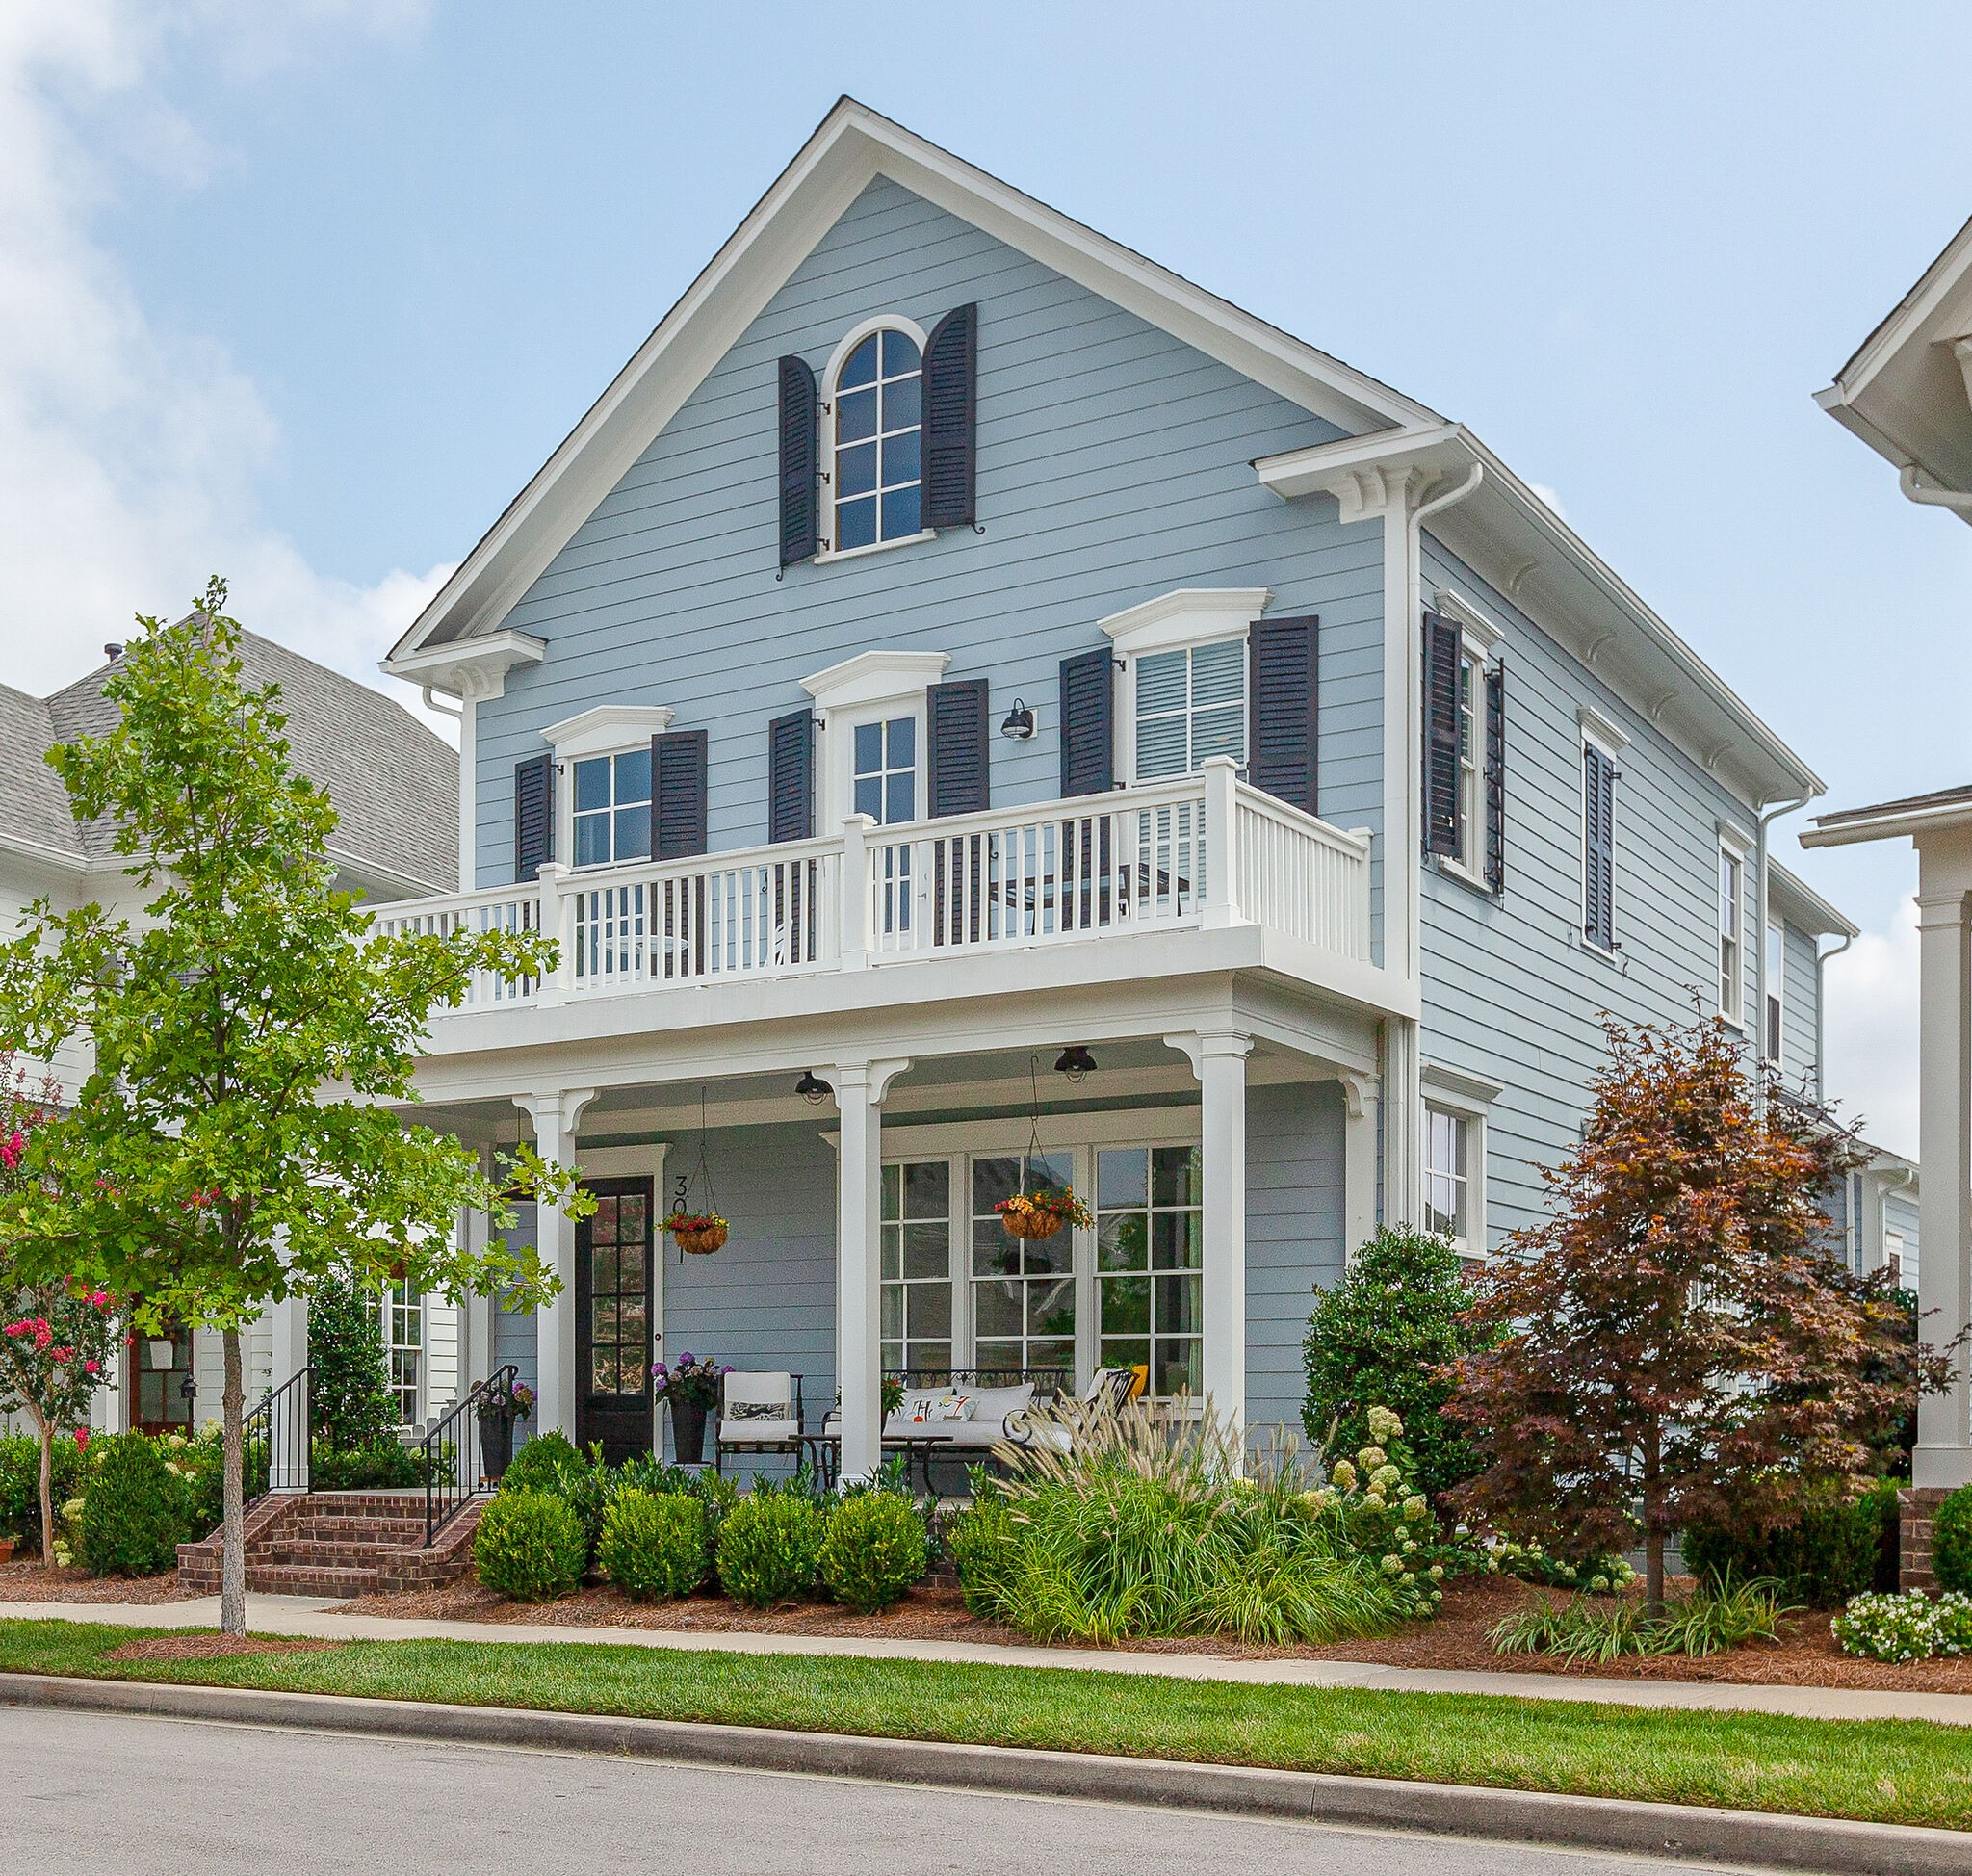 3031 General Martin Ln Property Photo - Franklin, TN real estate listing